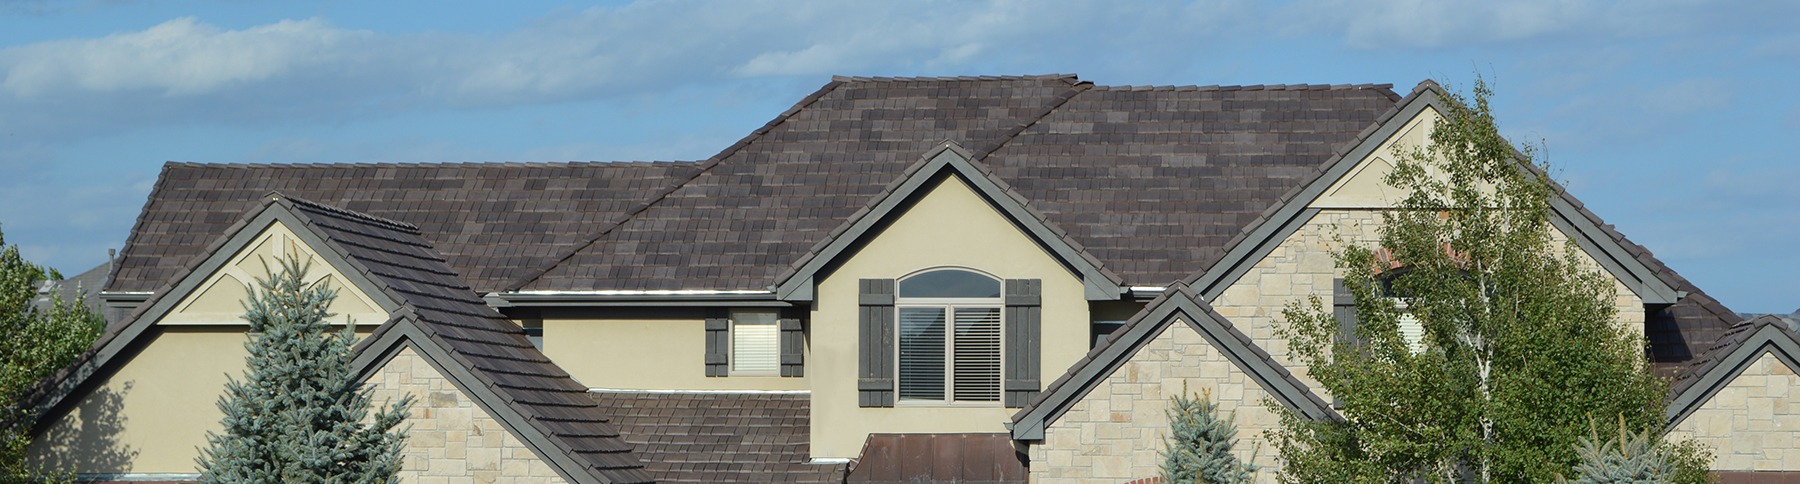 Shake roofing that is impact resistant and wind resistant for Oklahoma roofs.